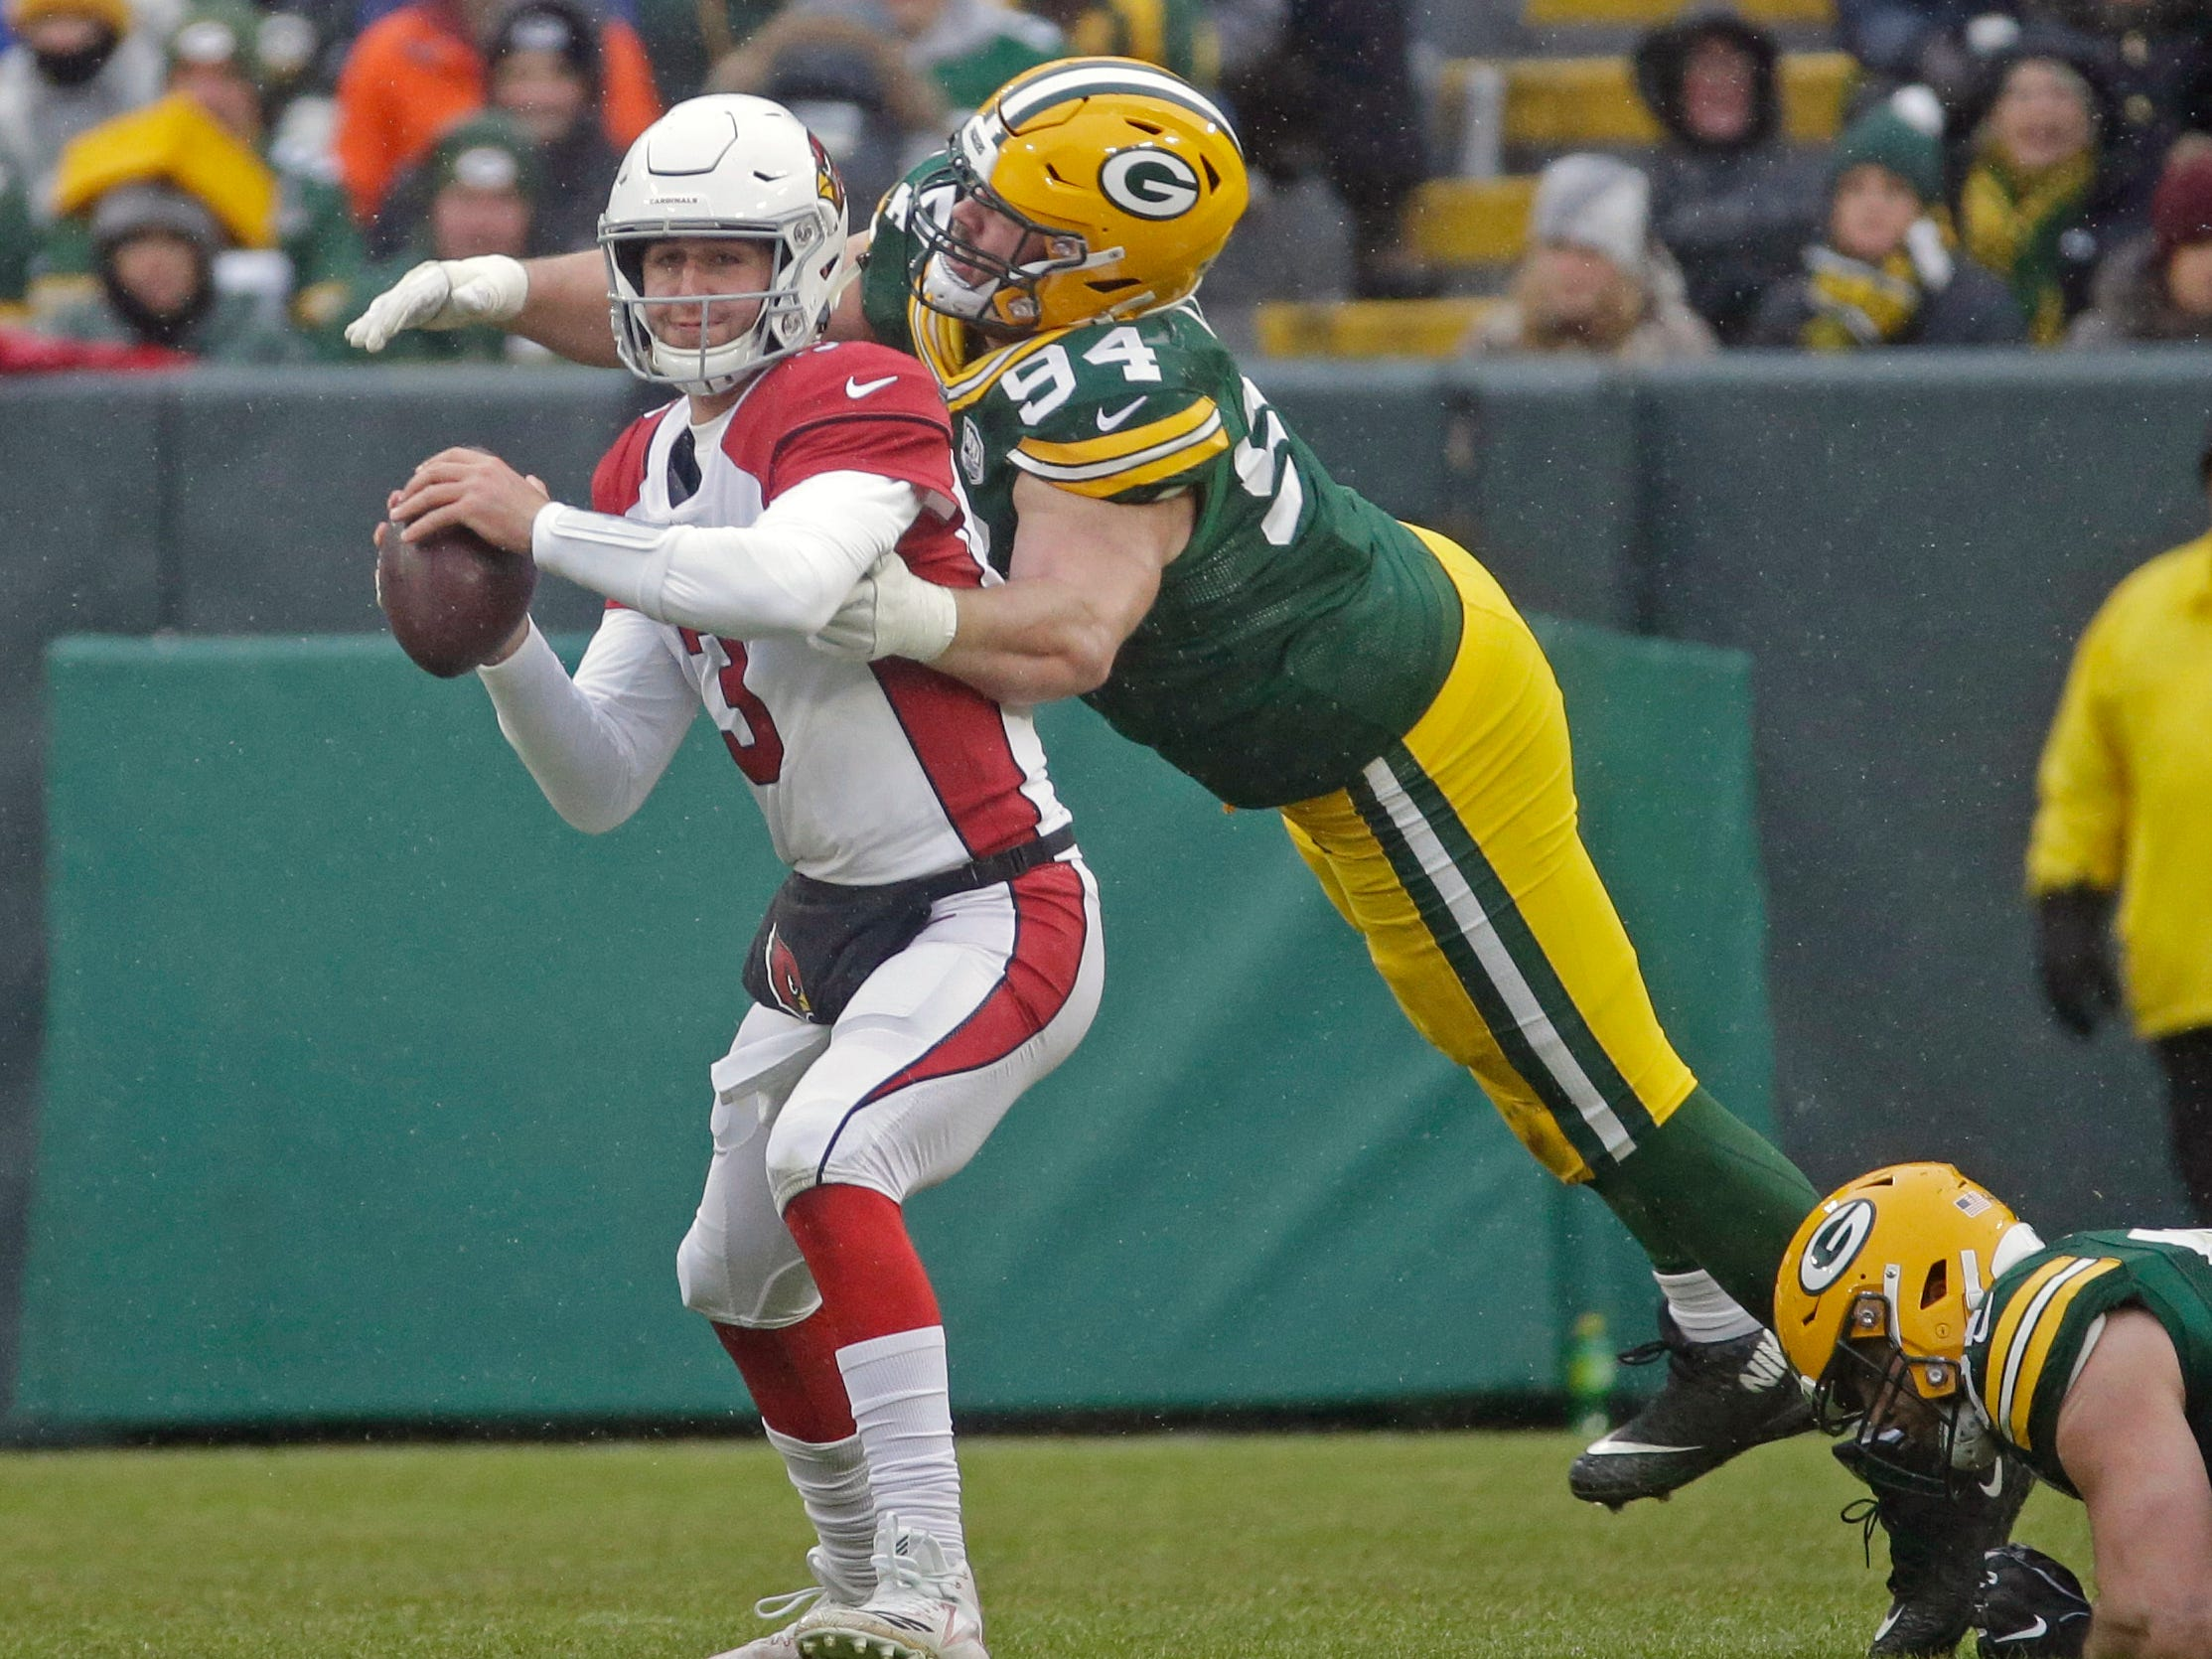 Arizona Cardinals quarterback Josh Rosen scrambles while being rushed by Green Bay Packers defensive end Dean Lowry during the second half of an NFL football game Sunday, Dec. 2, 2018, in Green Bay, Wis. (AP Photo/Mike Roemer)